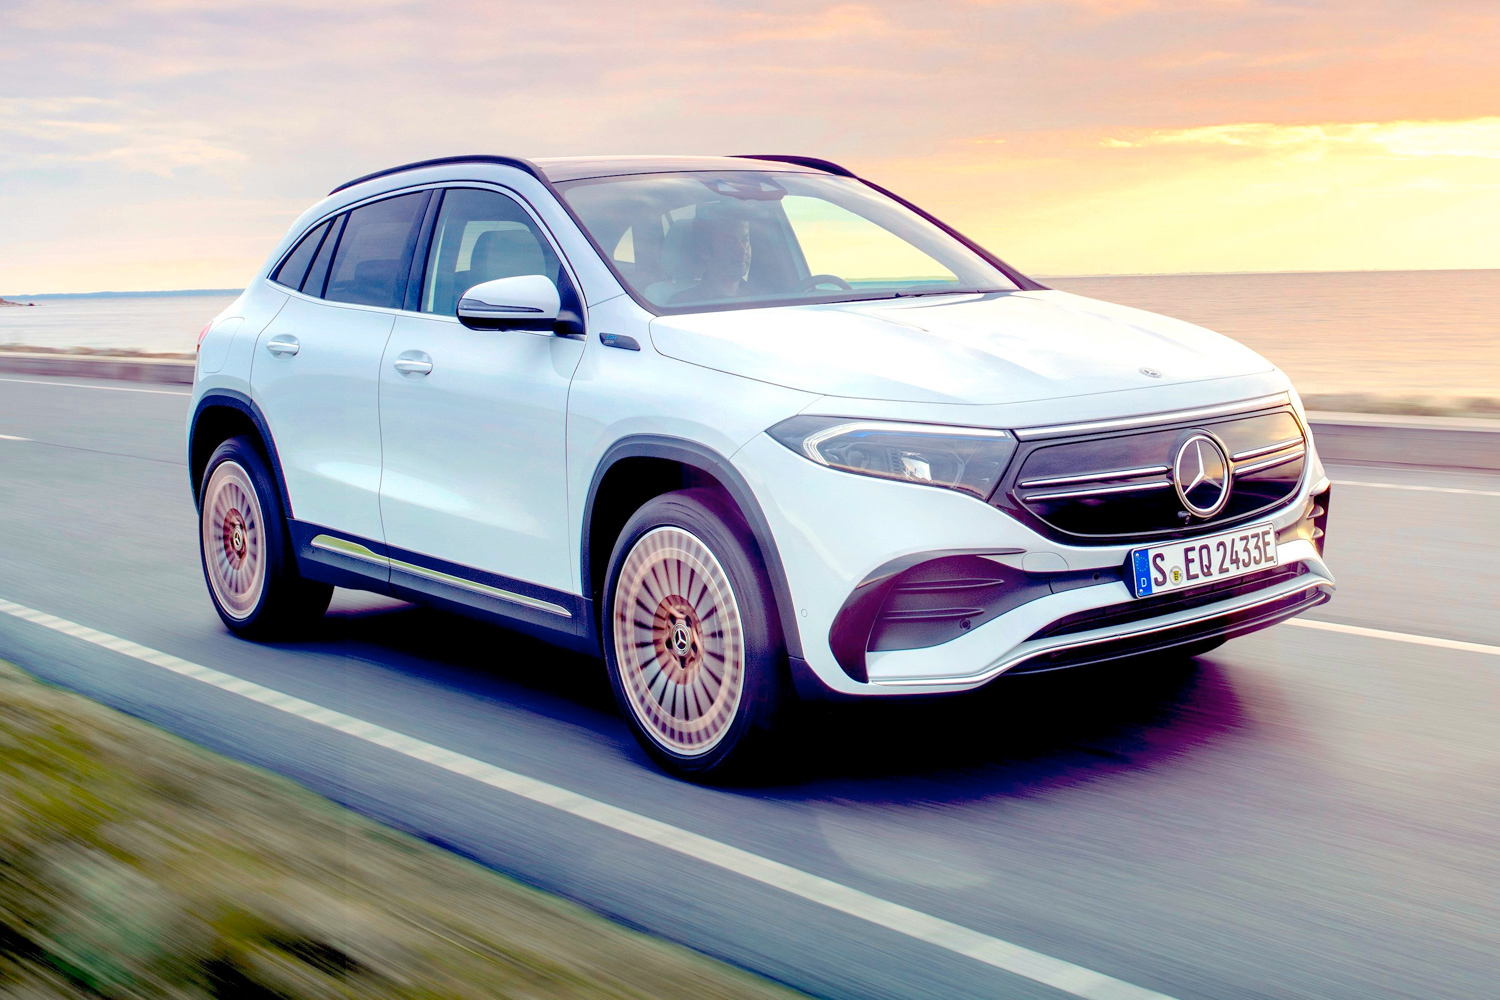 Car News | Mercedes-Benz EQA electric vehicle arrives in Ireland | CompleteCar.ie